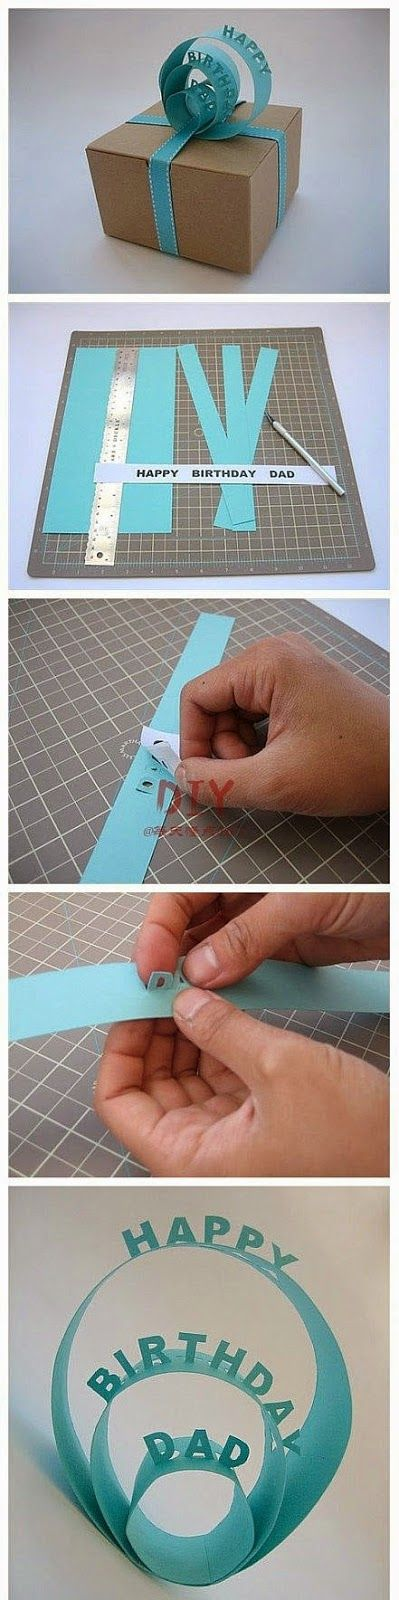 http://diycollection1.blogspot.com/search?updated-max=2014-04-25T12:02:00-07:00